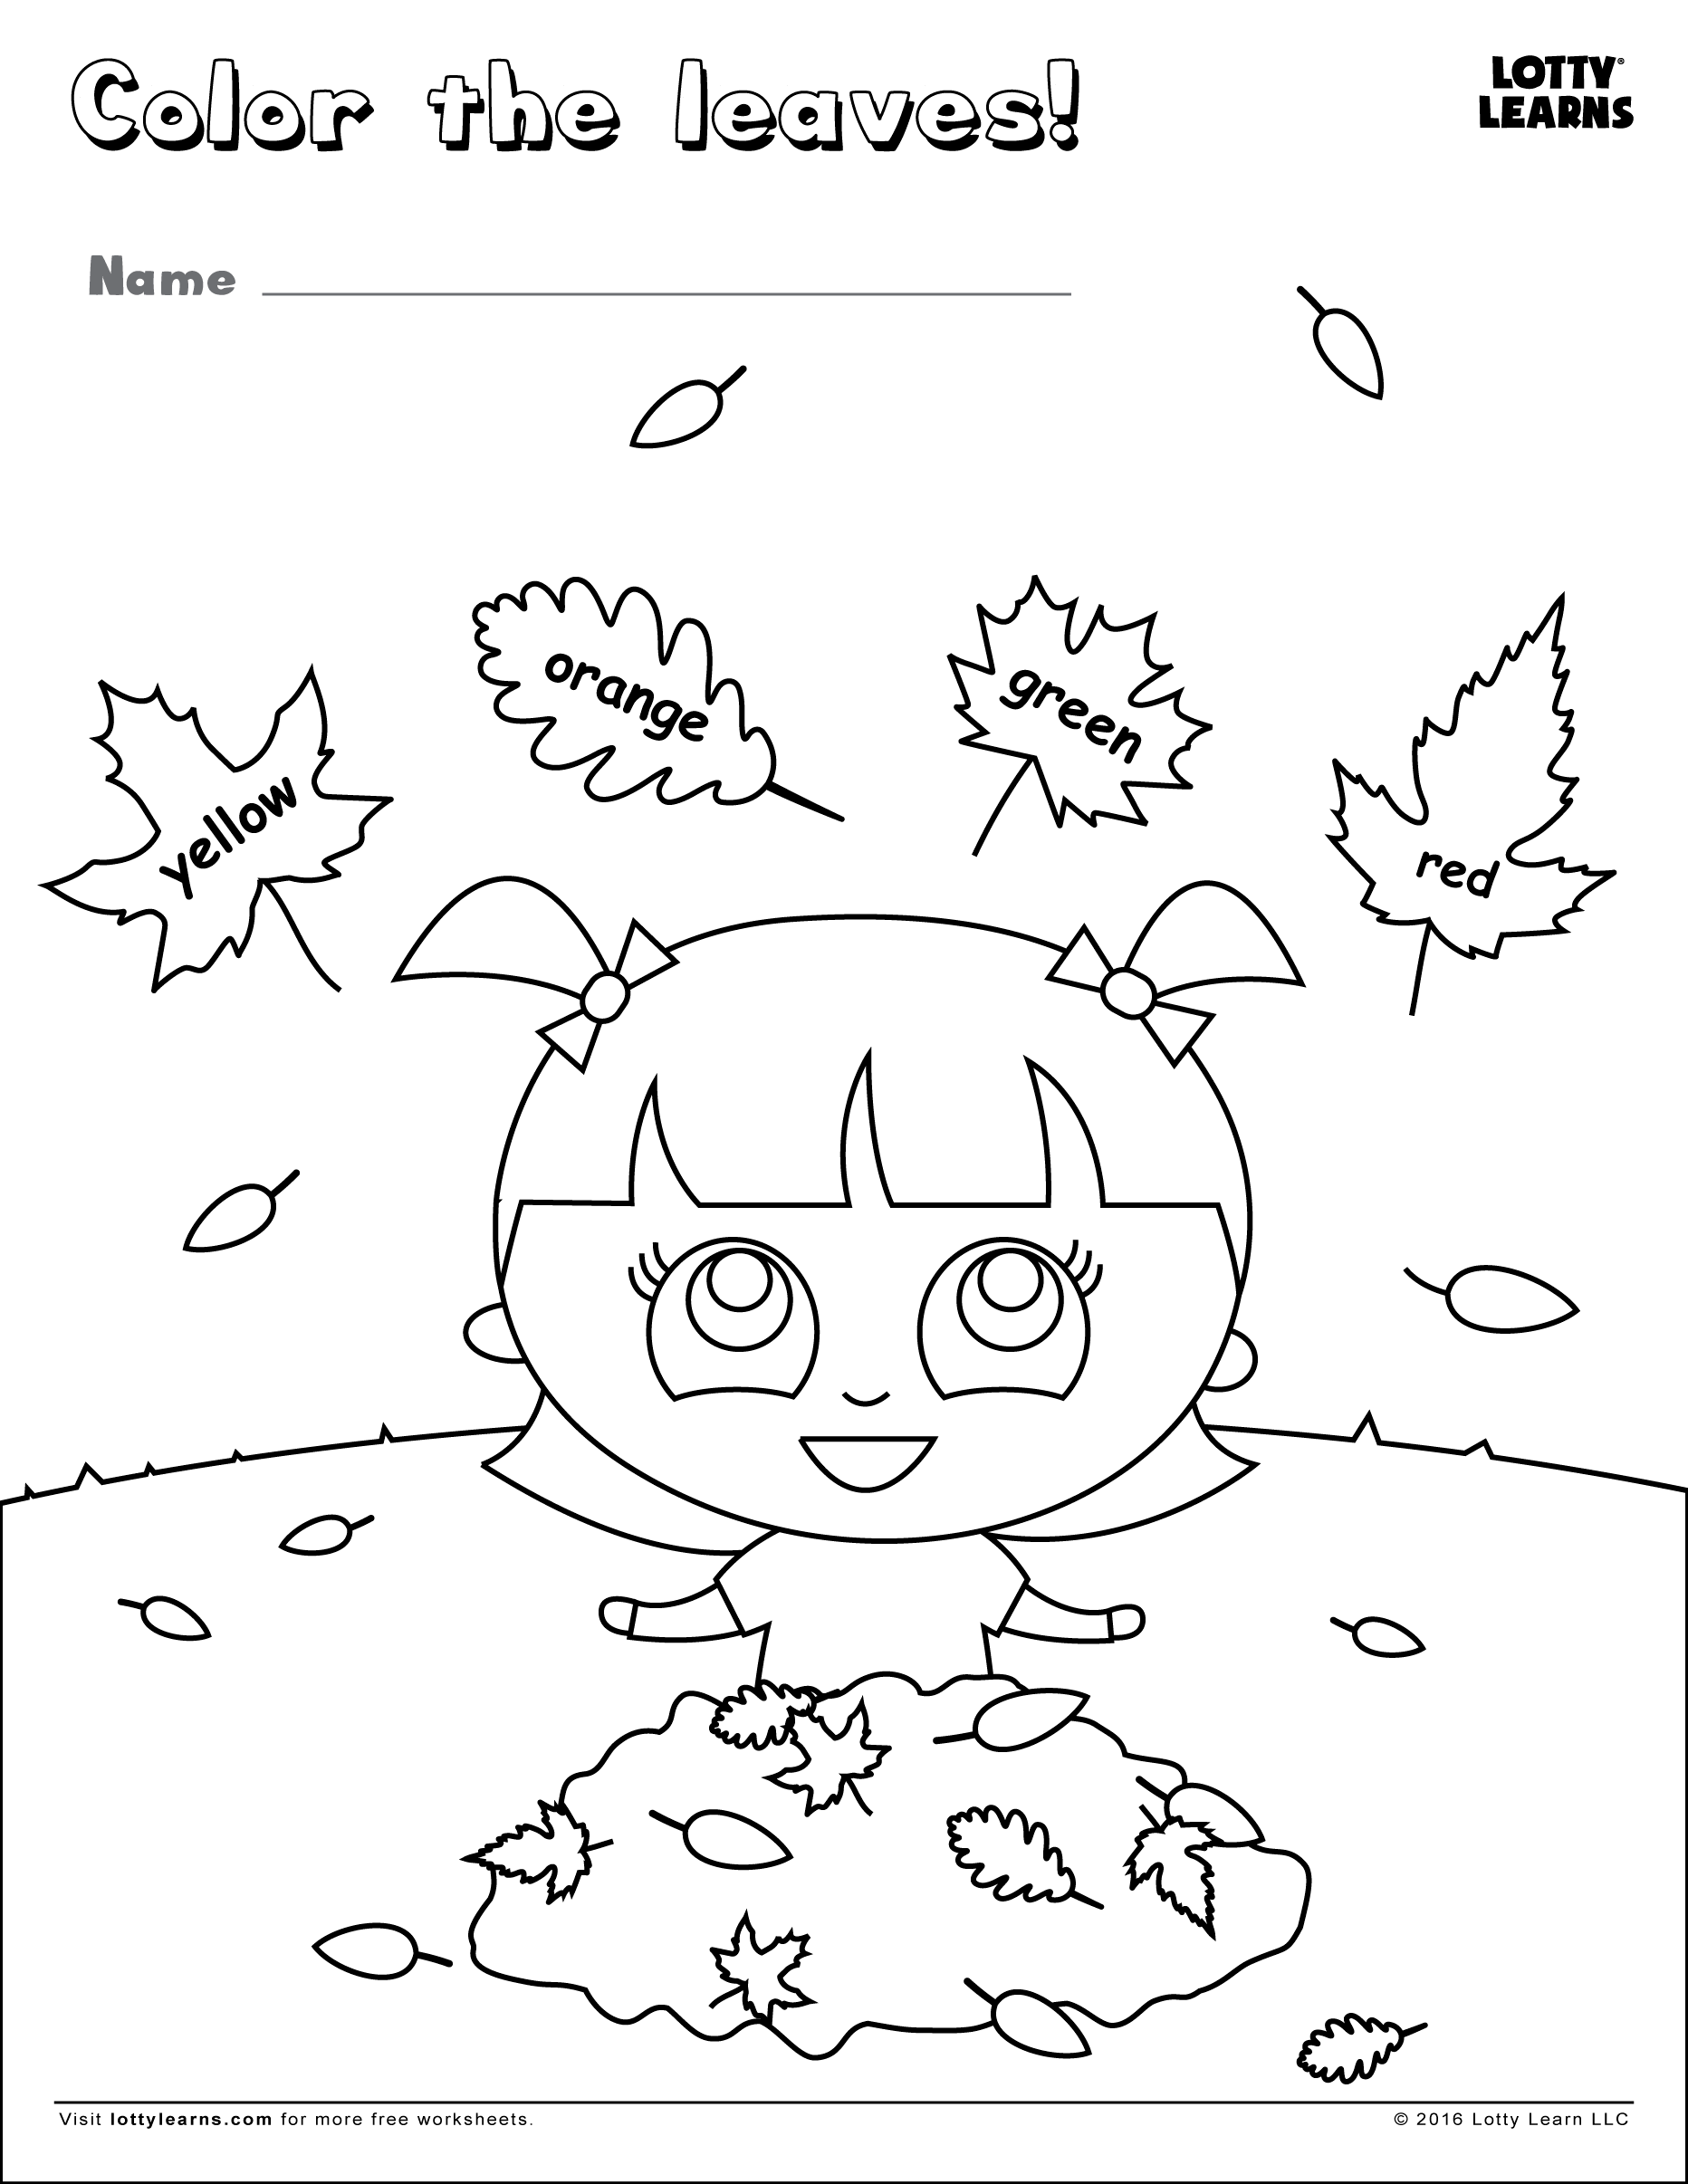 Color The Leaves